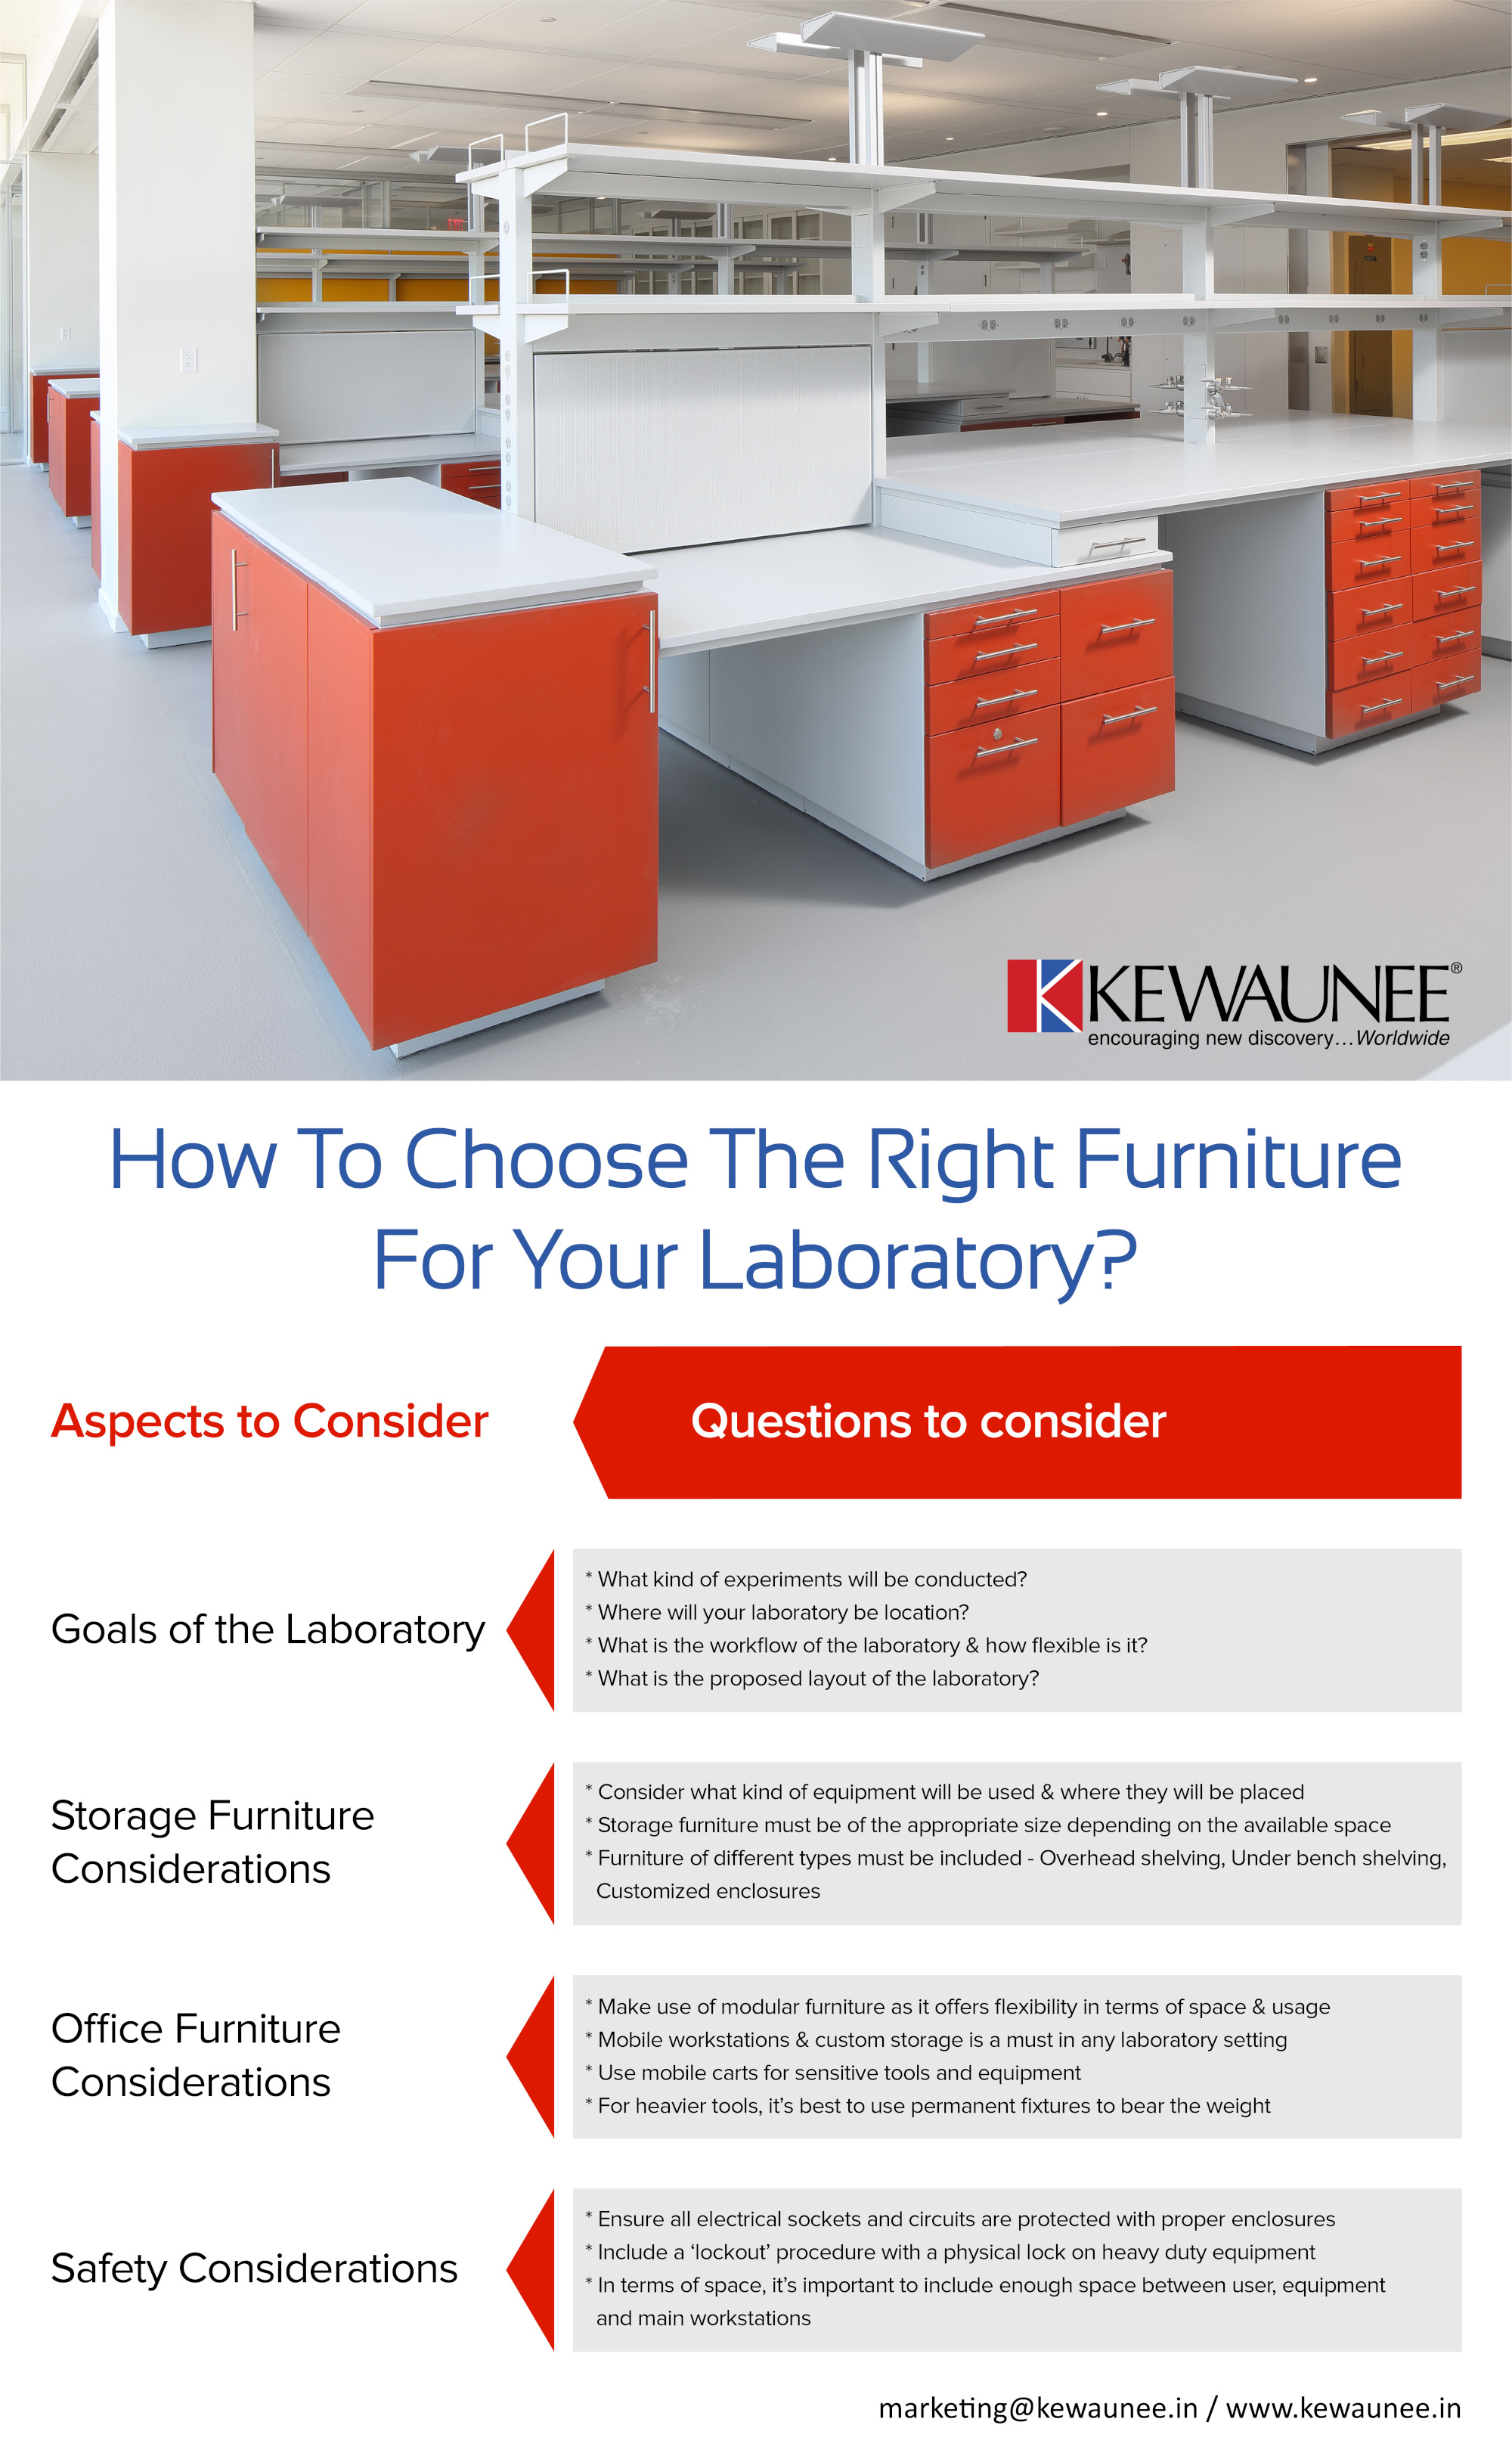 How to choose the right furniture for your laboratory?